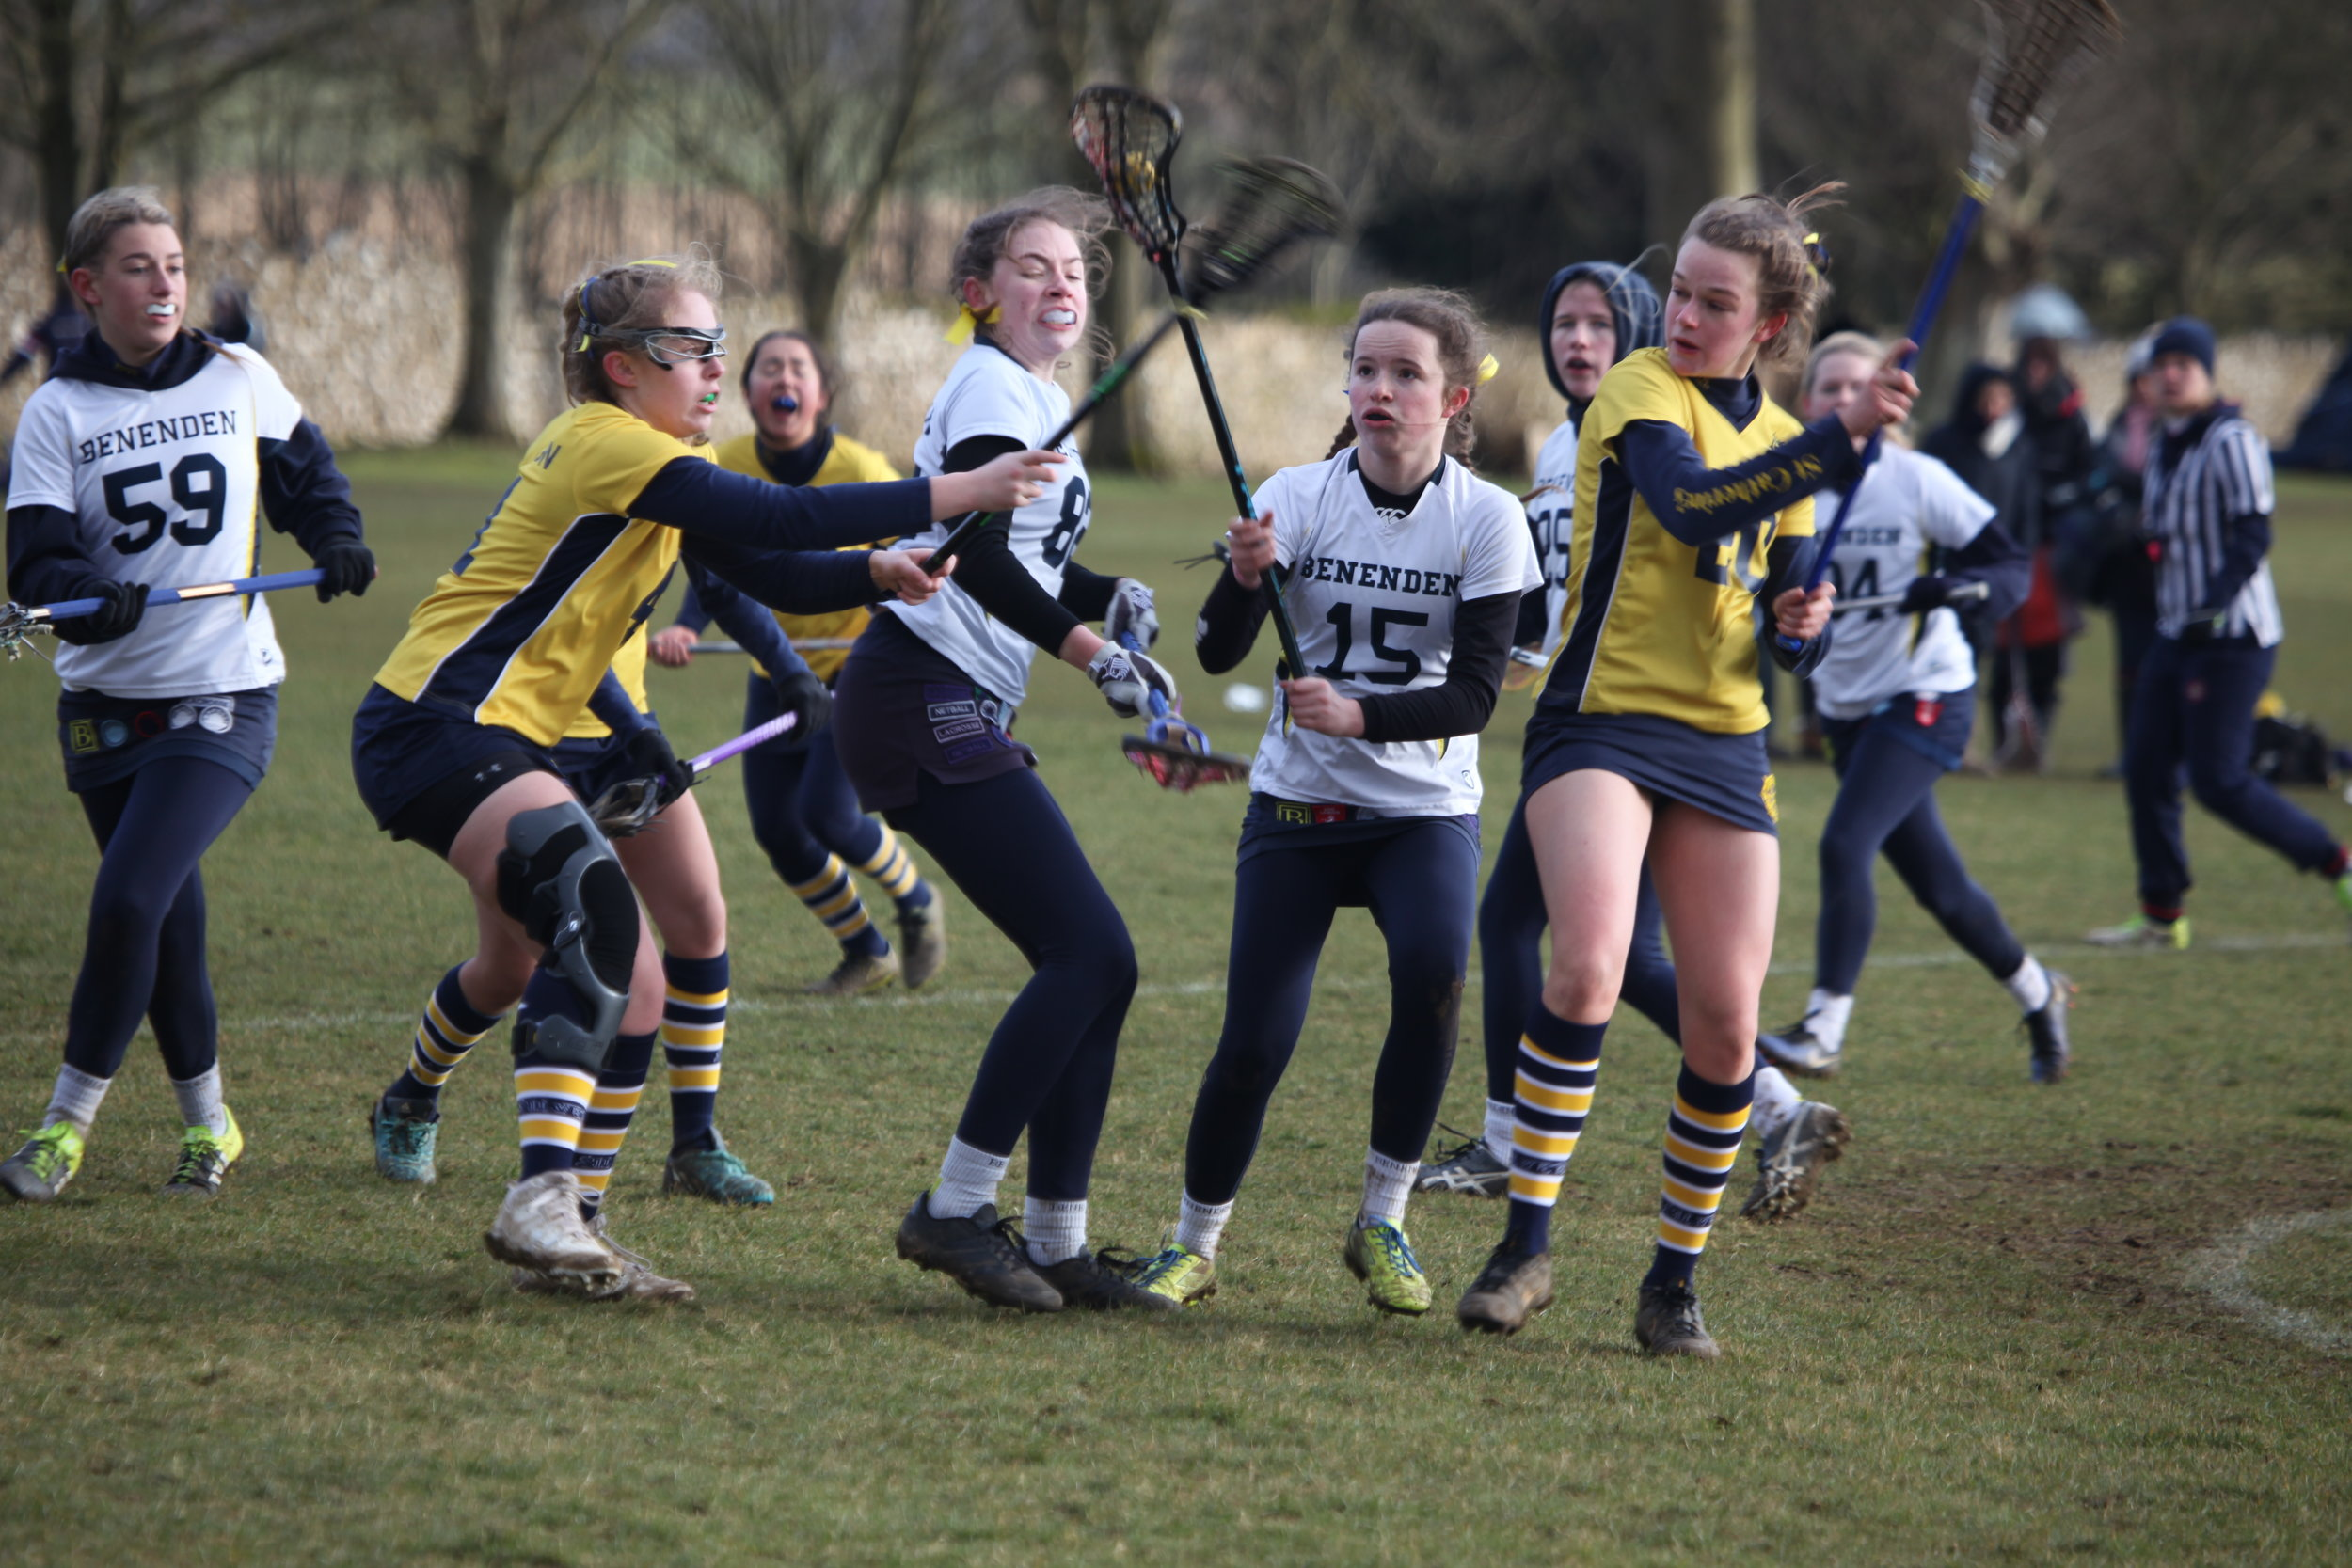 Girls playing lacrosse at school